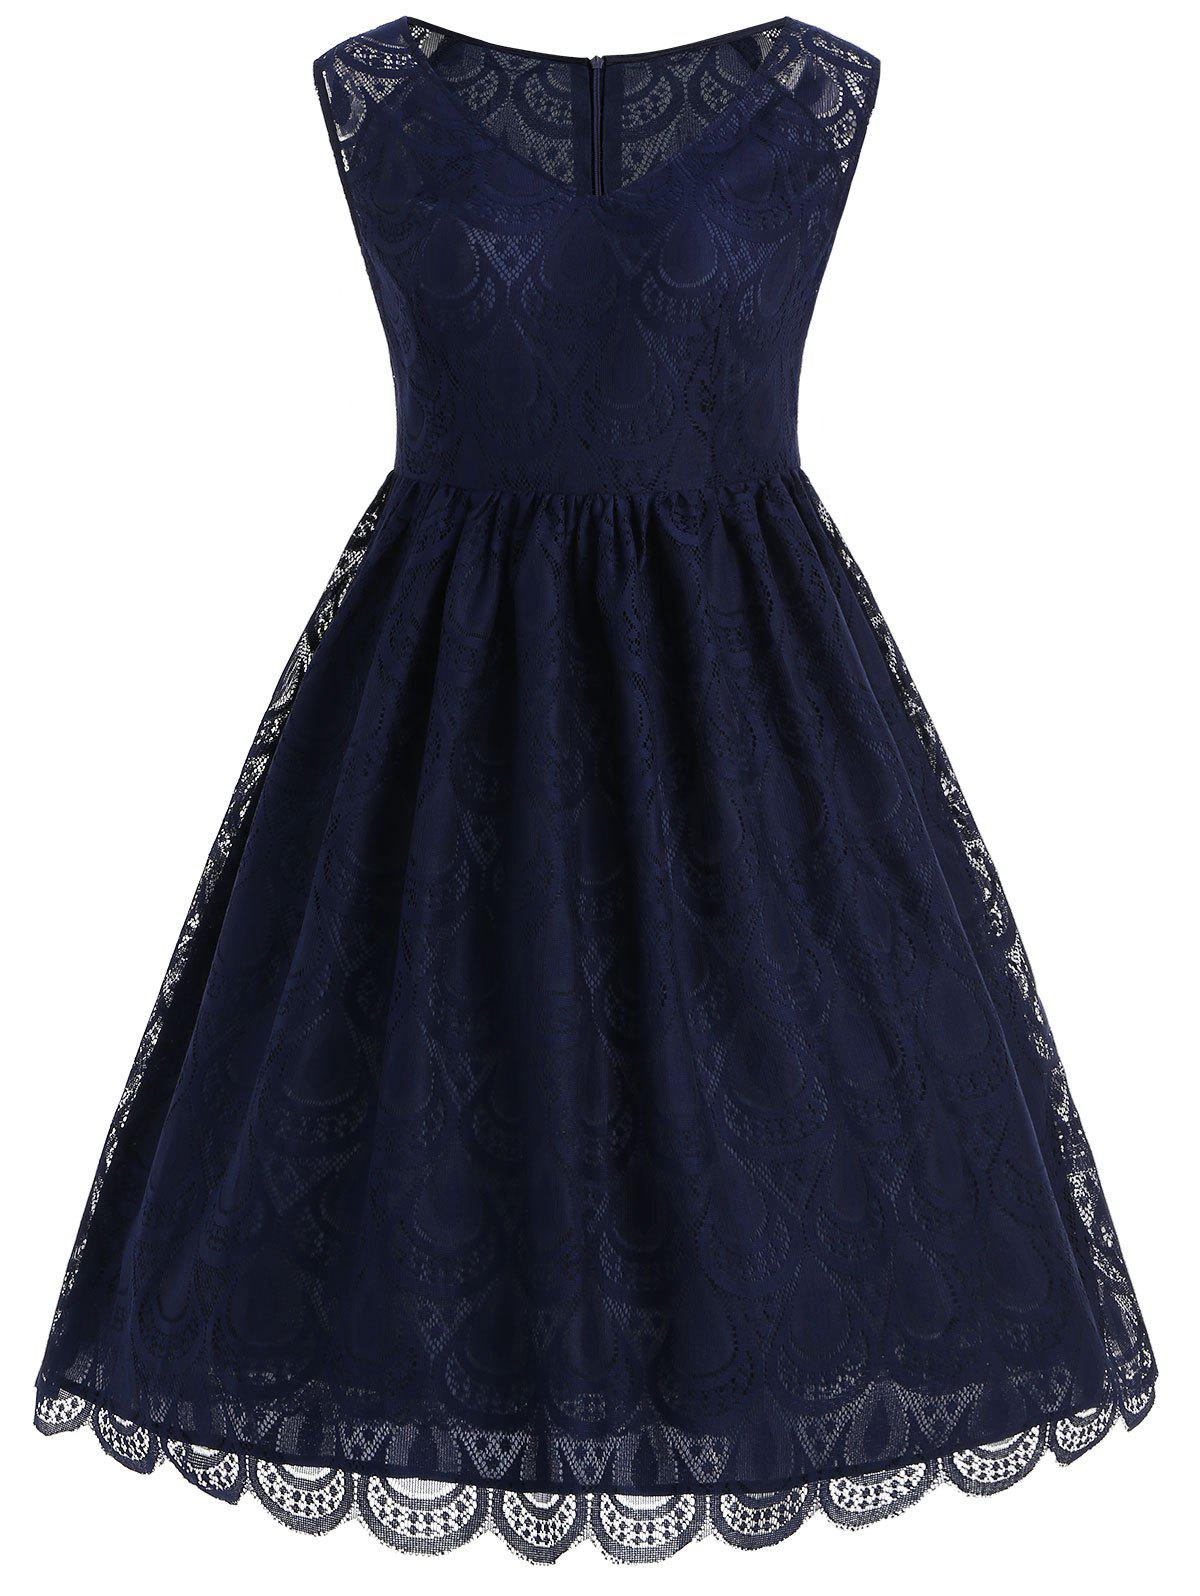 Lace Overlay Fit and Flare Dress guipure lace overlay fit and flare dress